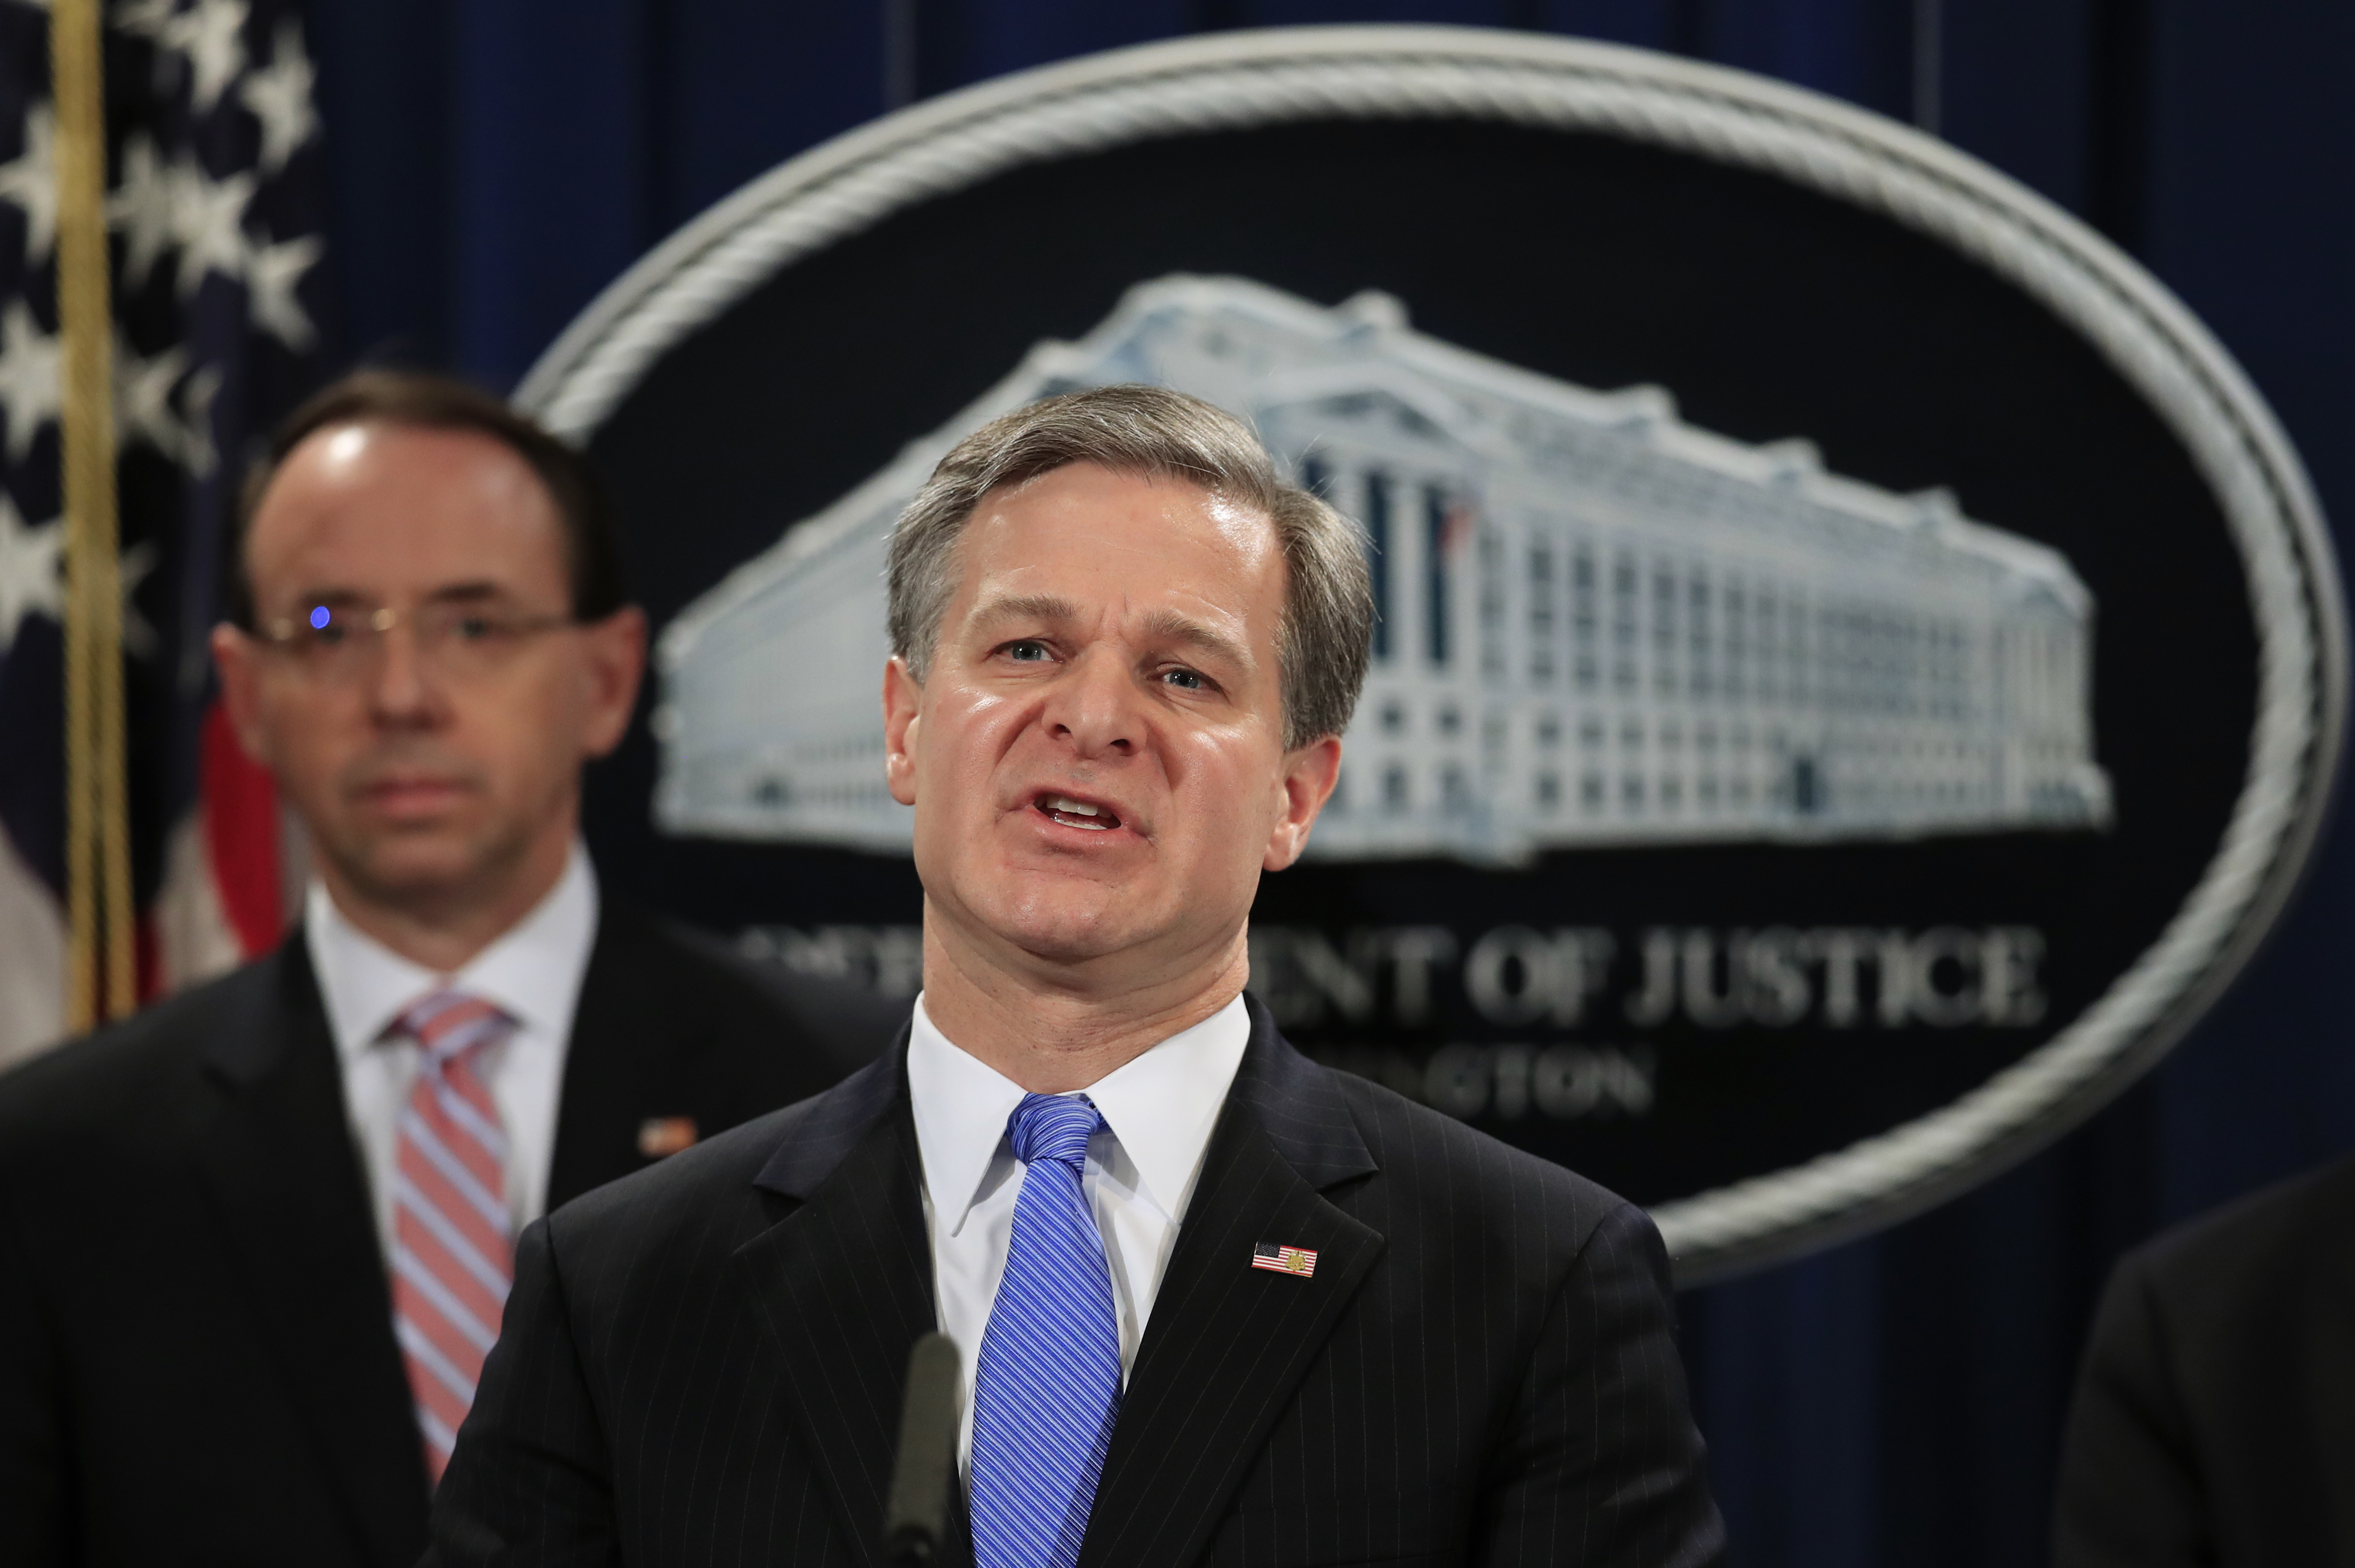 FBI director Christopher Wray with deputy attorney general Rod Rosenstein, speaks during a news conference at the Department of Justice in Washington